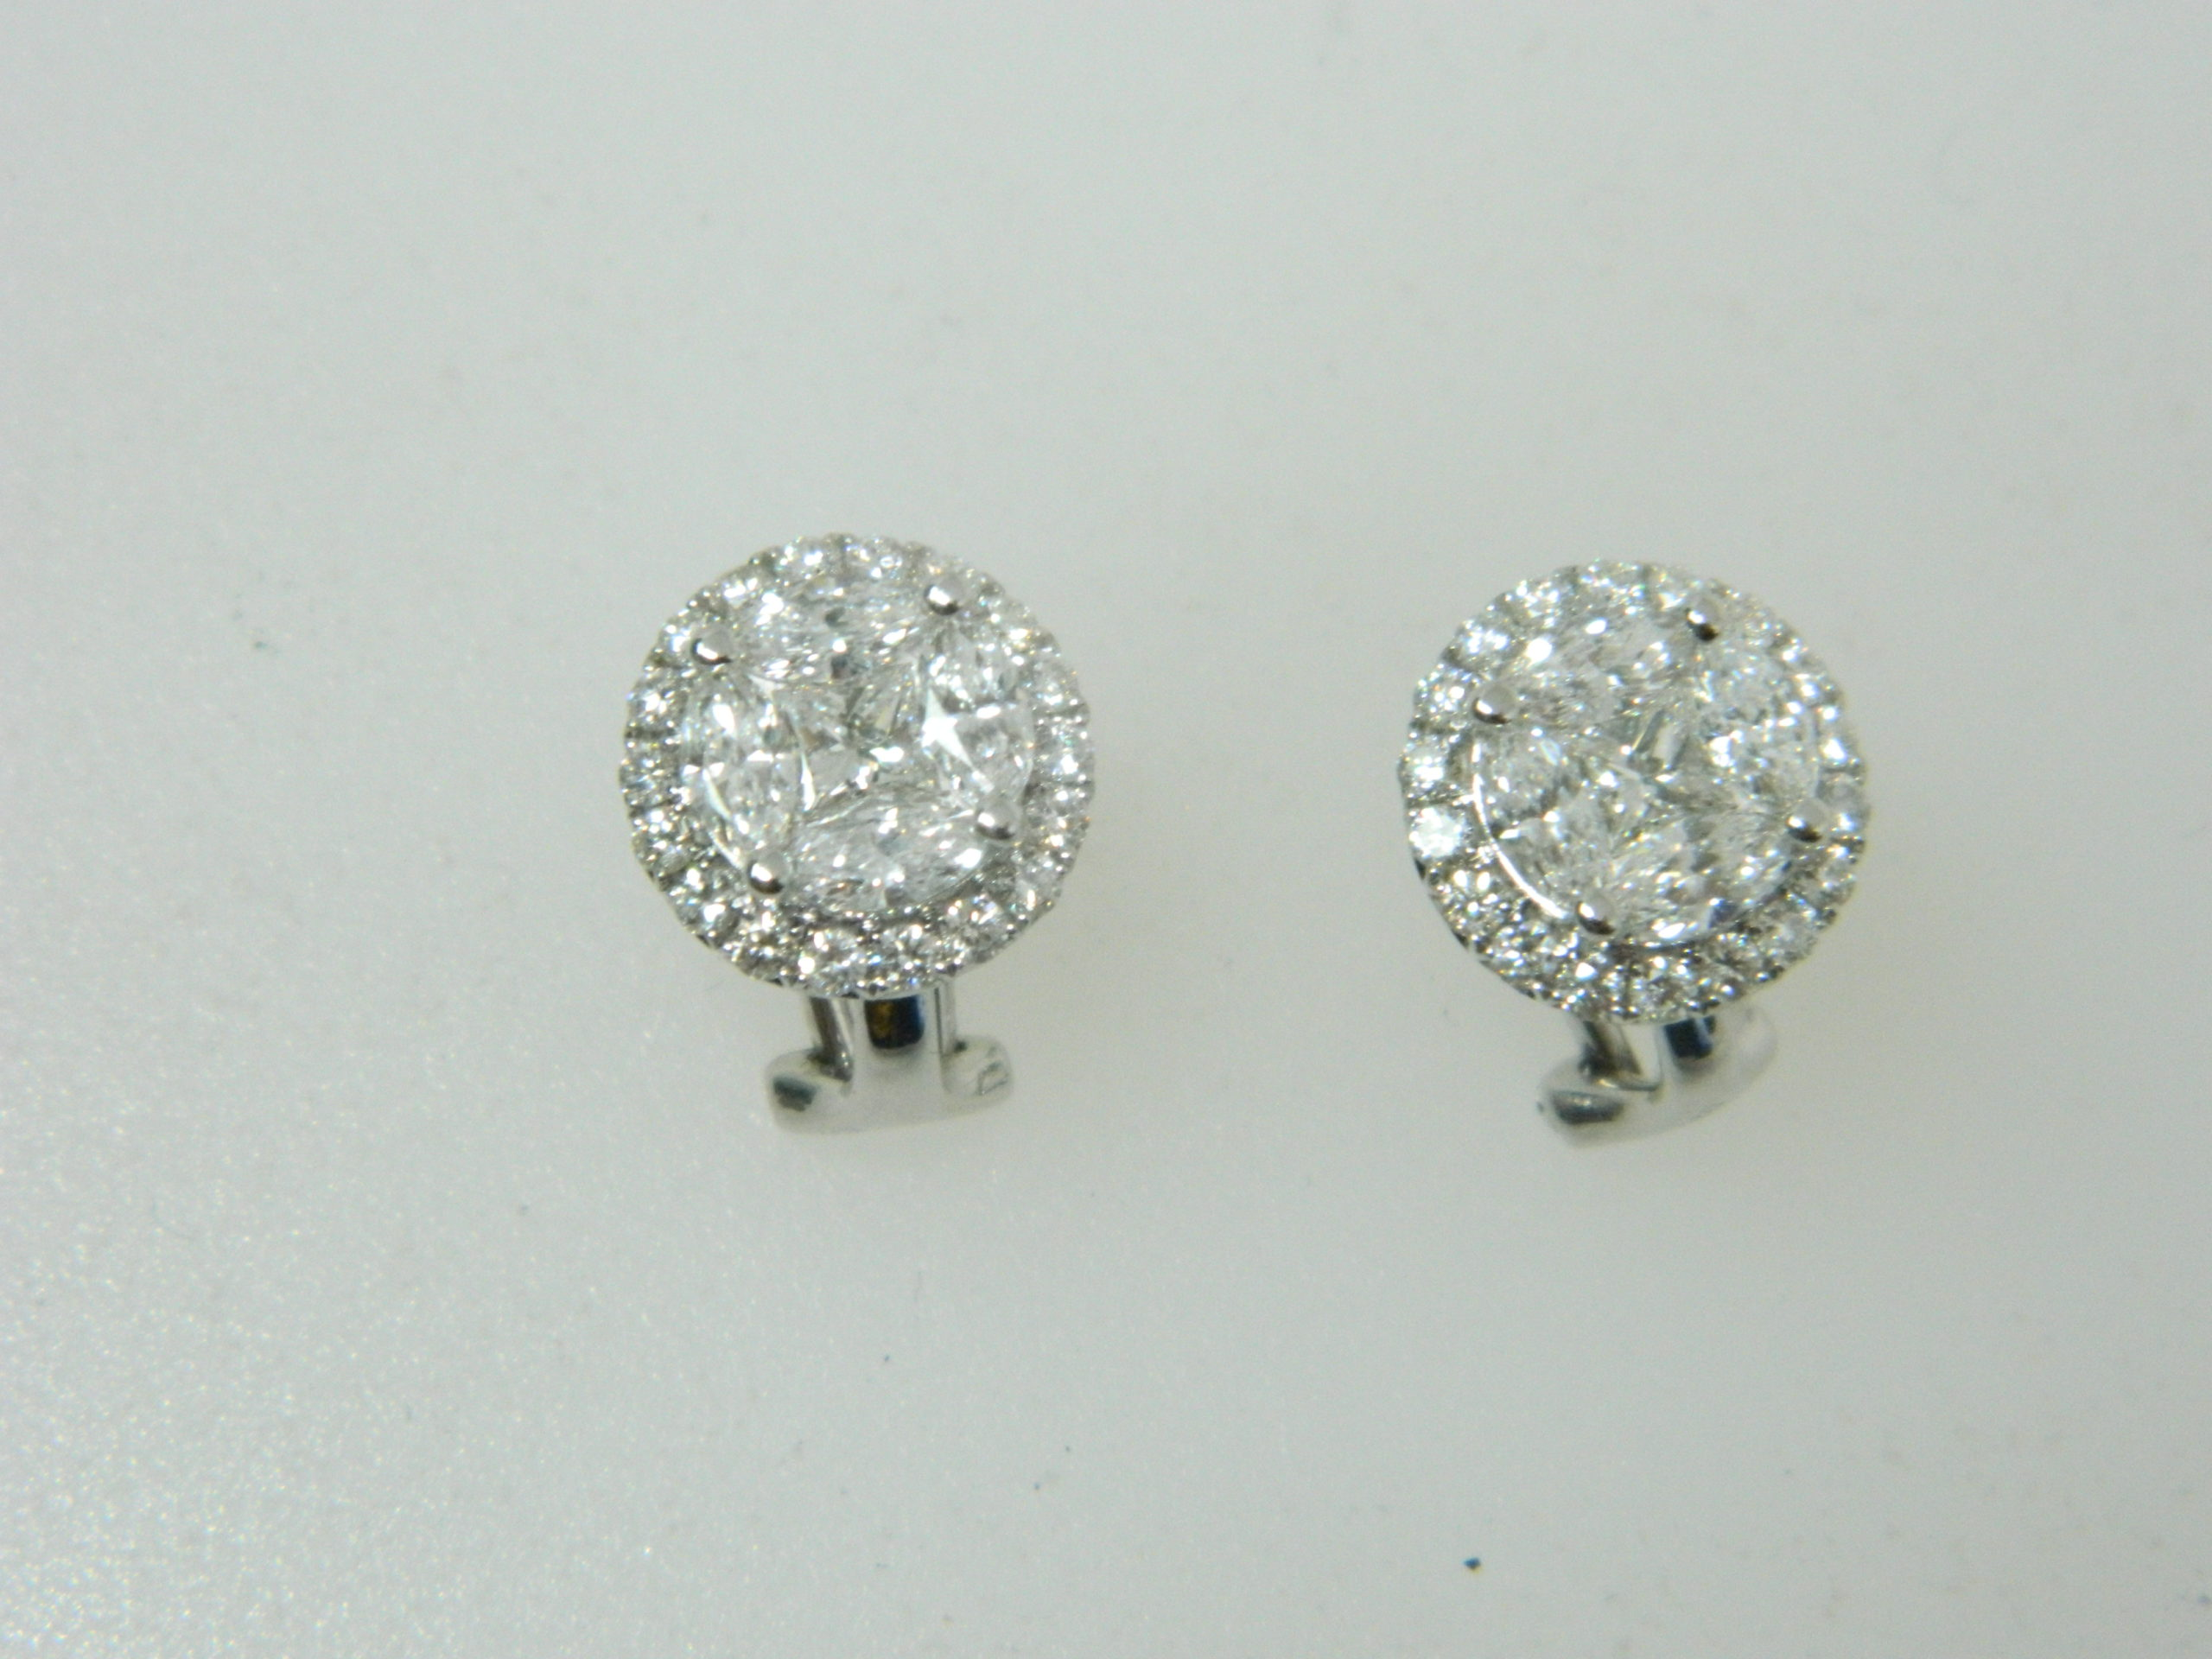 18 Karat White Gold Button Mounted Earrings with 8 Marquise Cut Diamonds weighing 1.08cts, 2 Princess Cut Diamonds weighing 0.37cts, 36 Round Cut Diamonds weighing 0.55cts.